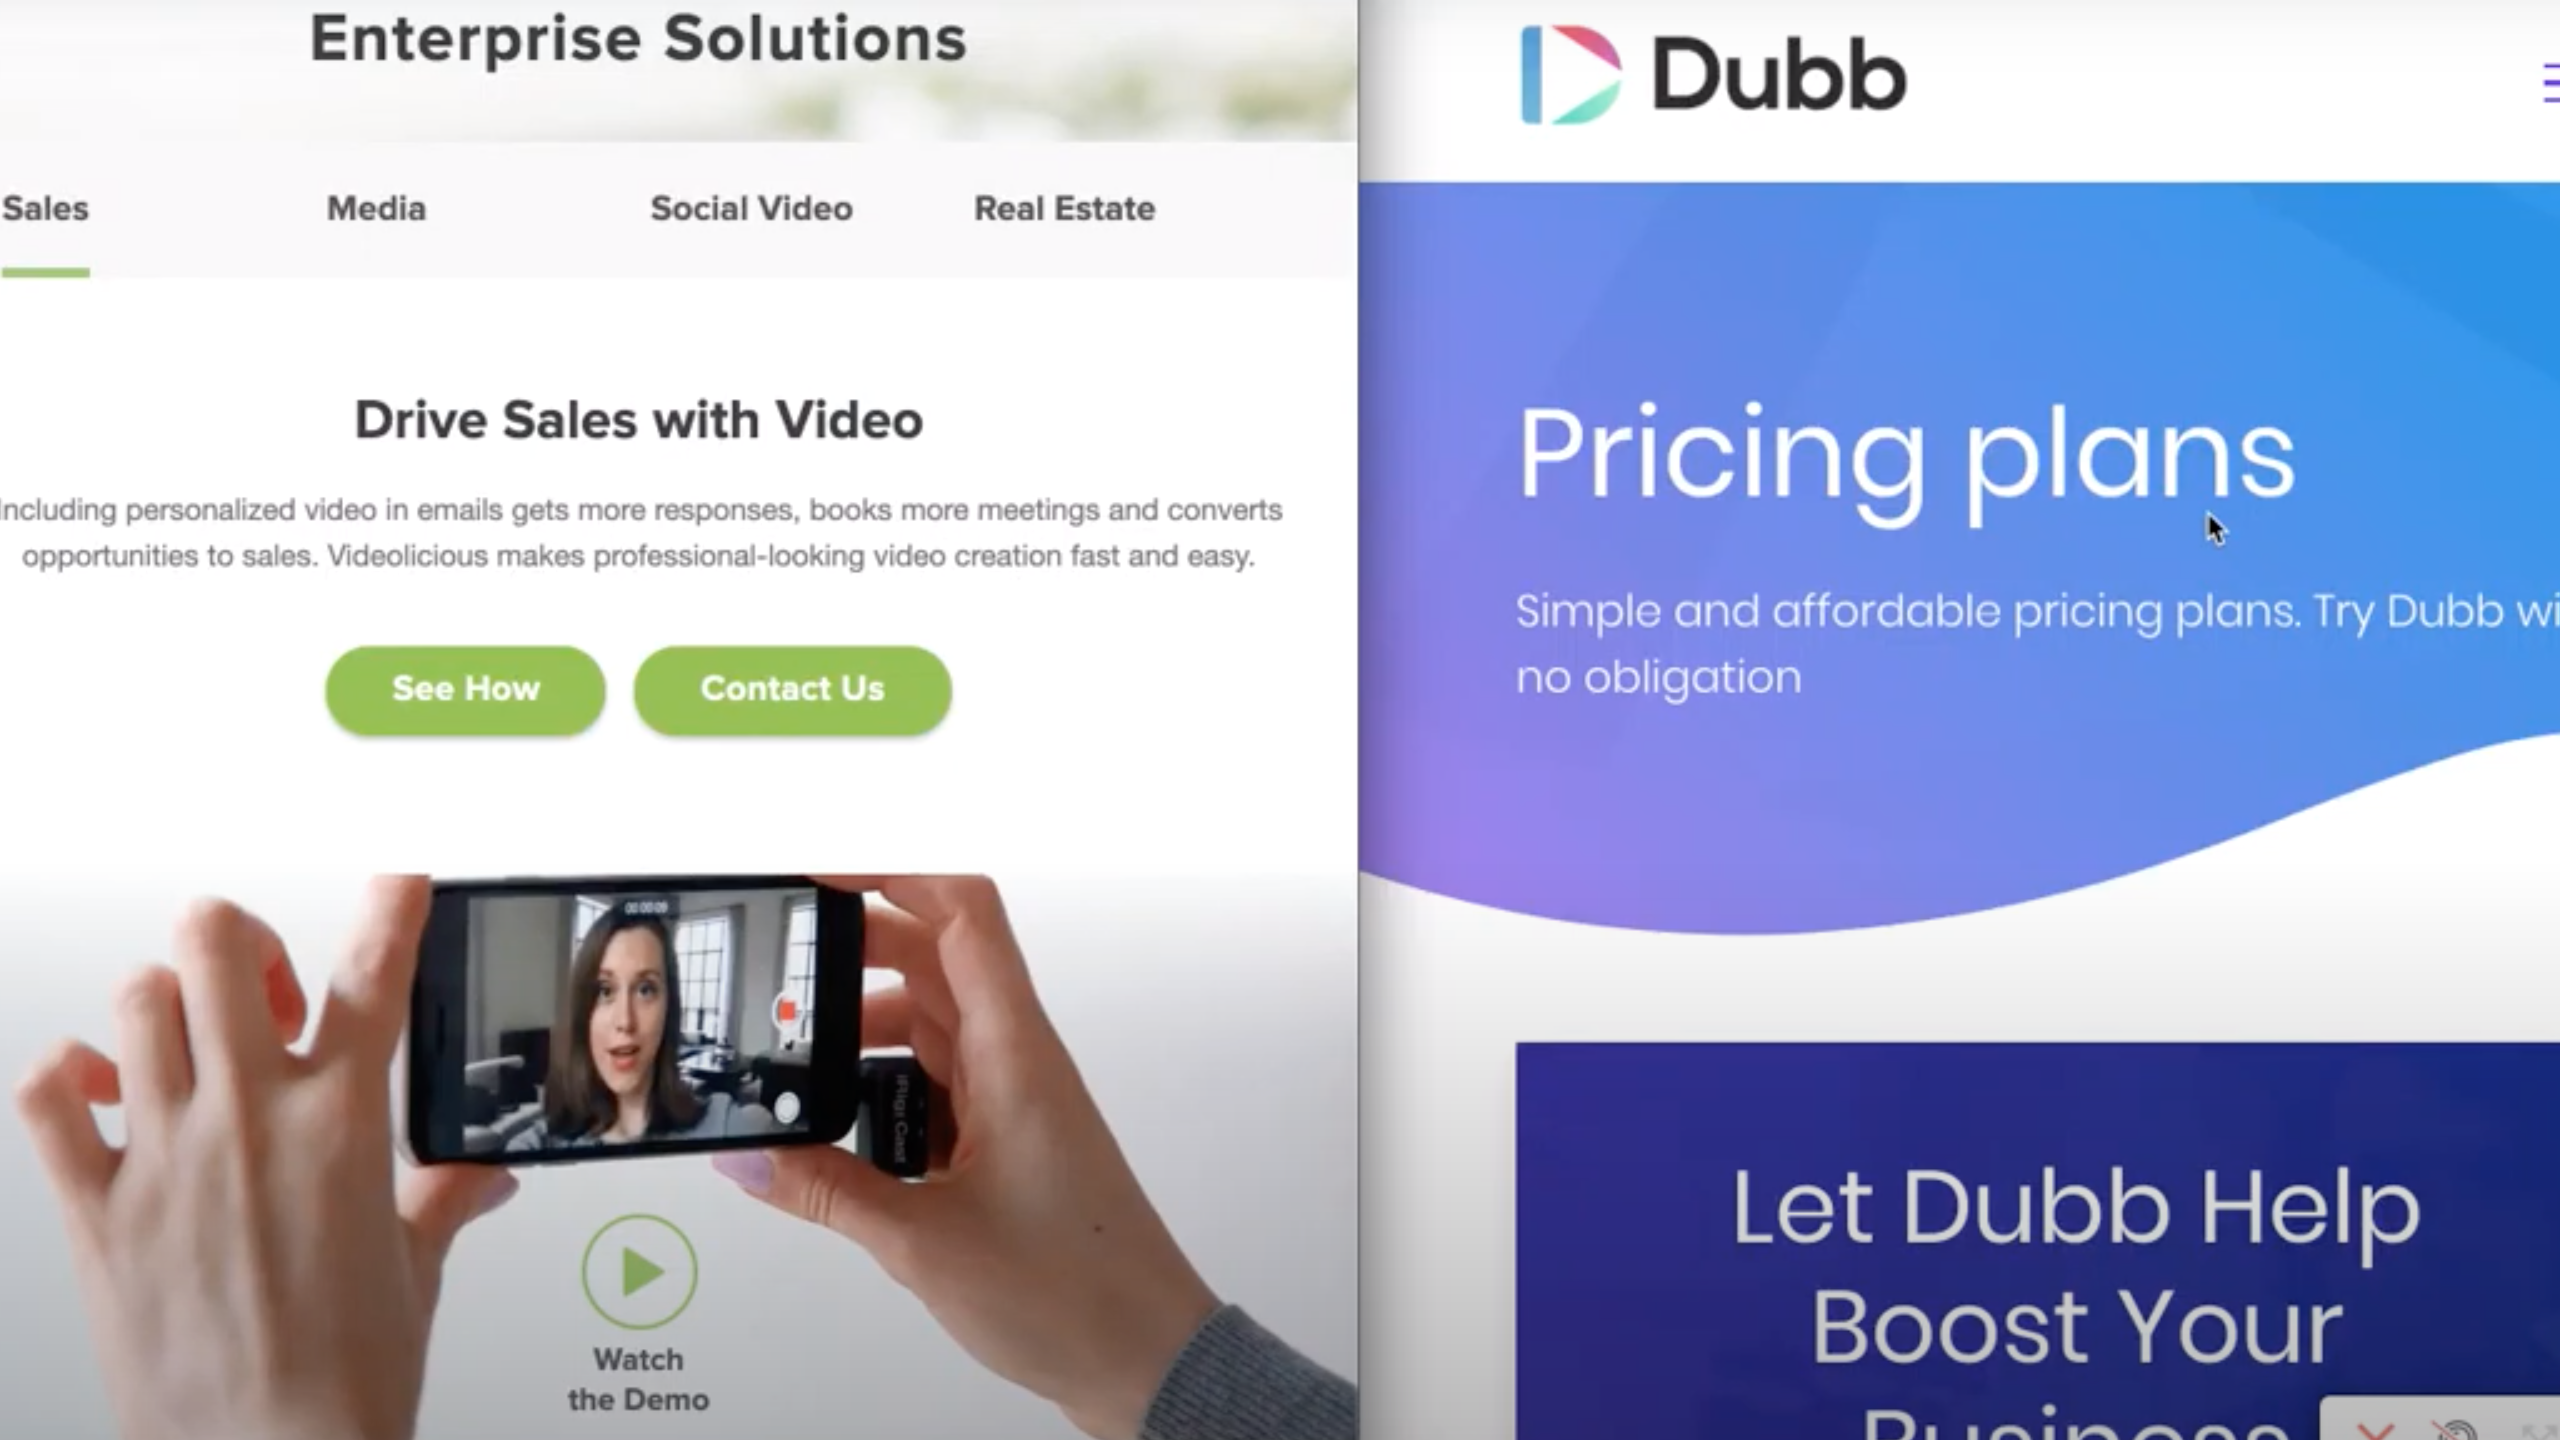 Videolicious pricing compared to Dubb pricing